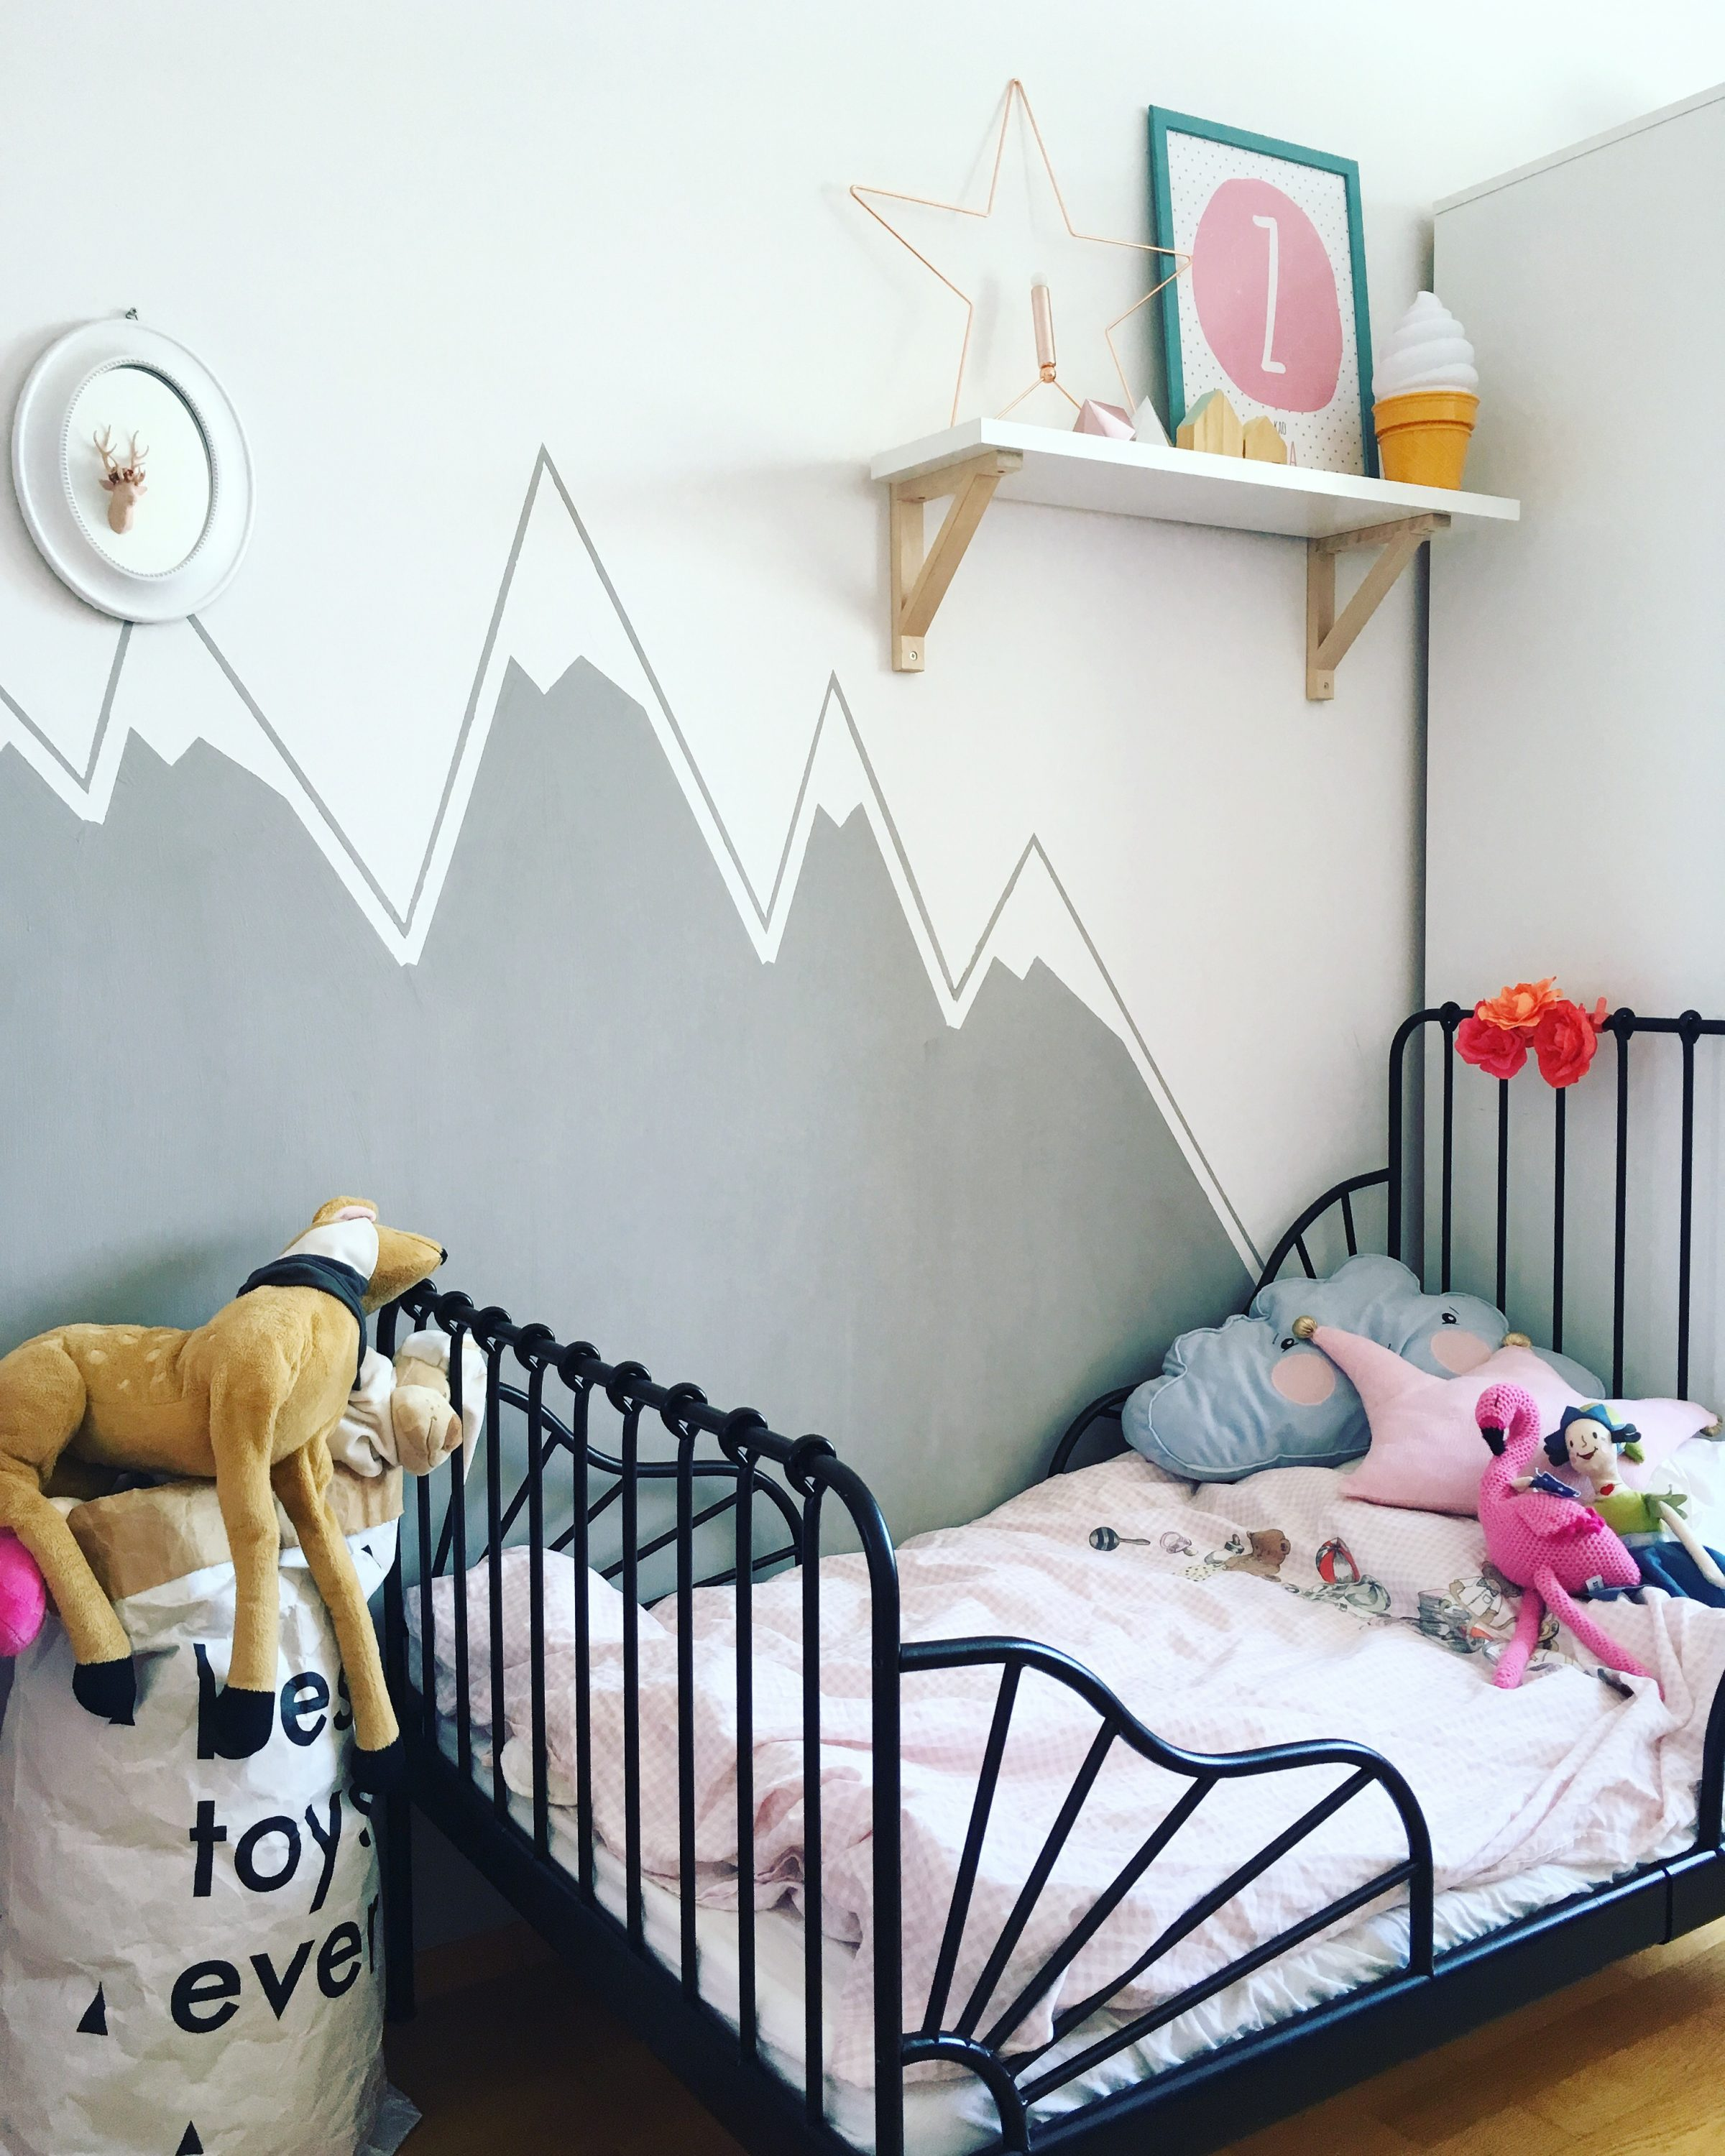 kids room kidsroom decor decoration ikea handmade diy toys dilemma posters